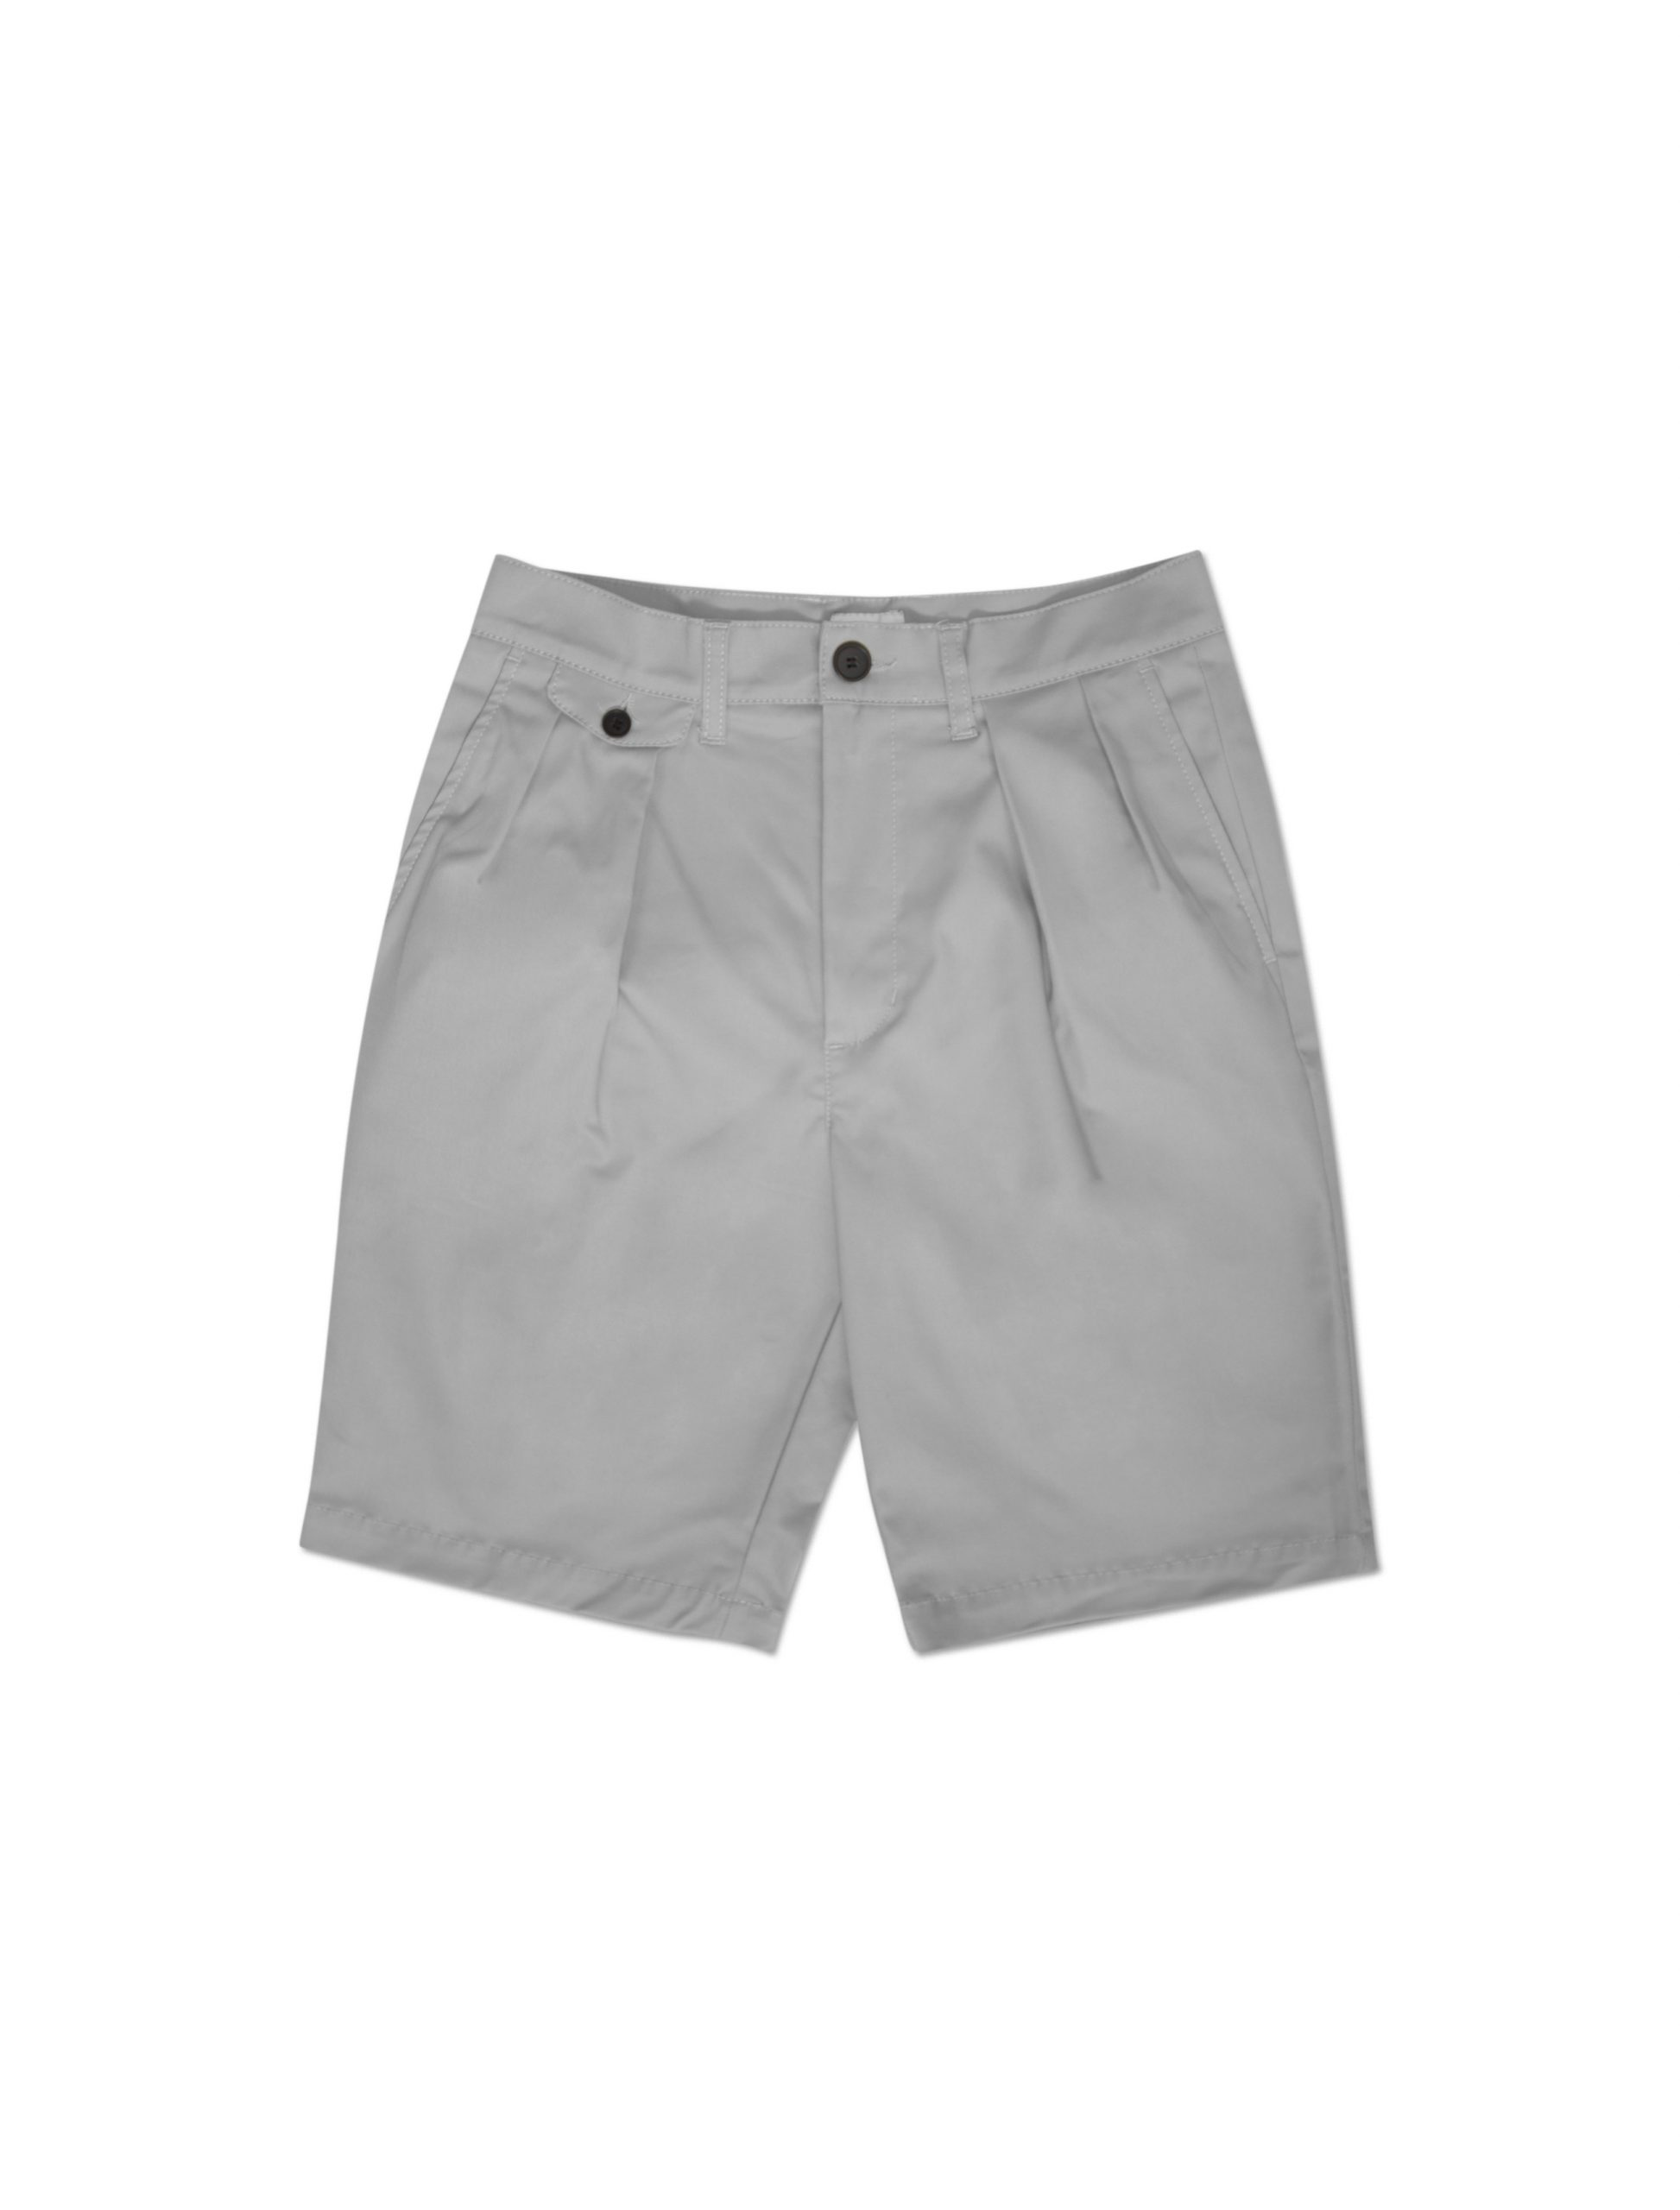 Paris Short Ghiaccio | Wooden Store